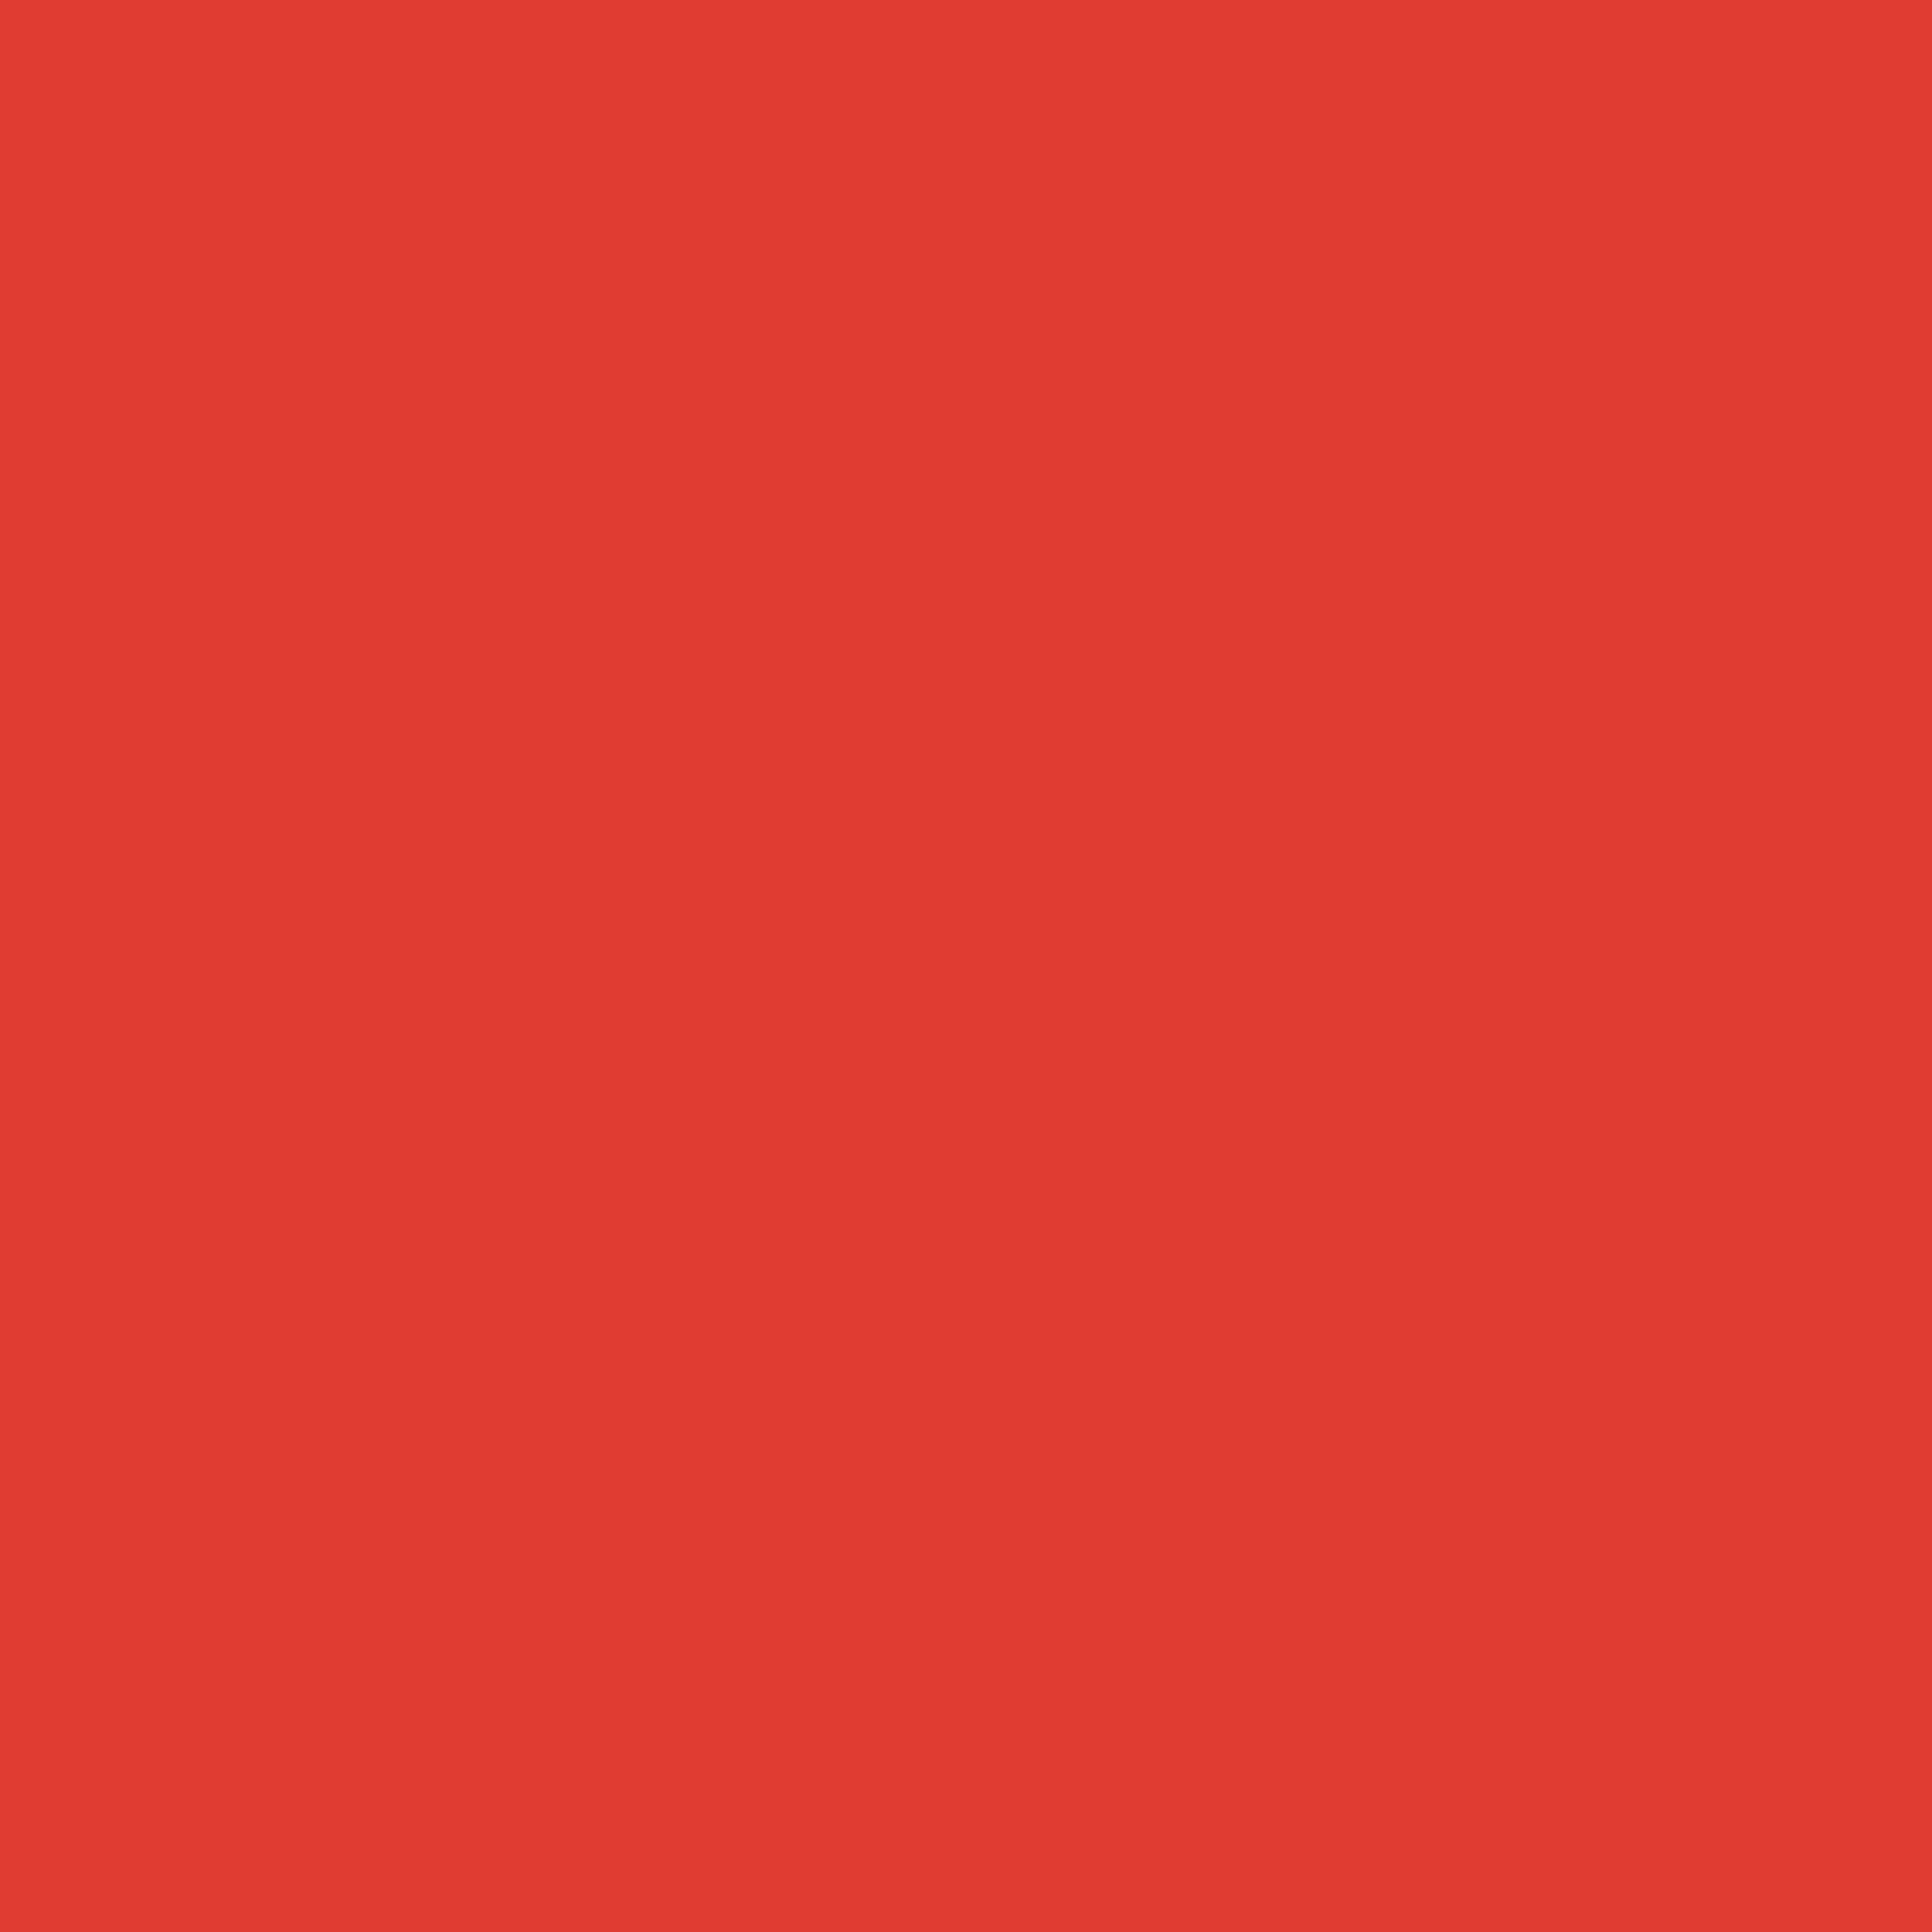 3600x3600 CG Red Solid Color Background